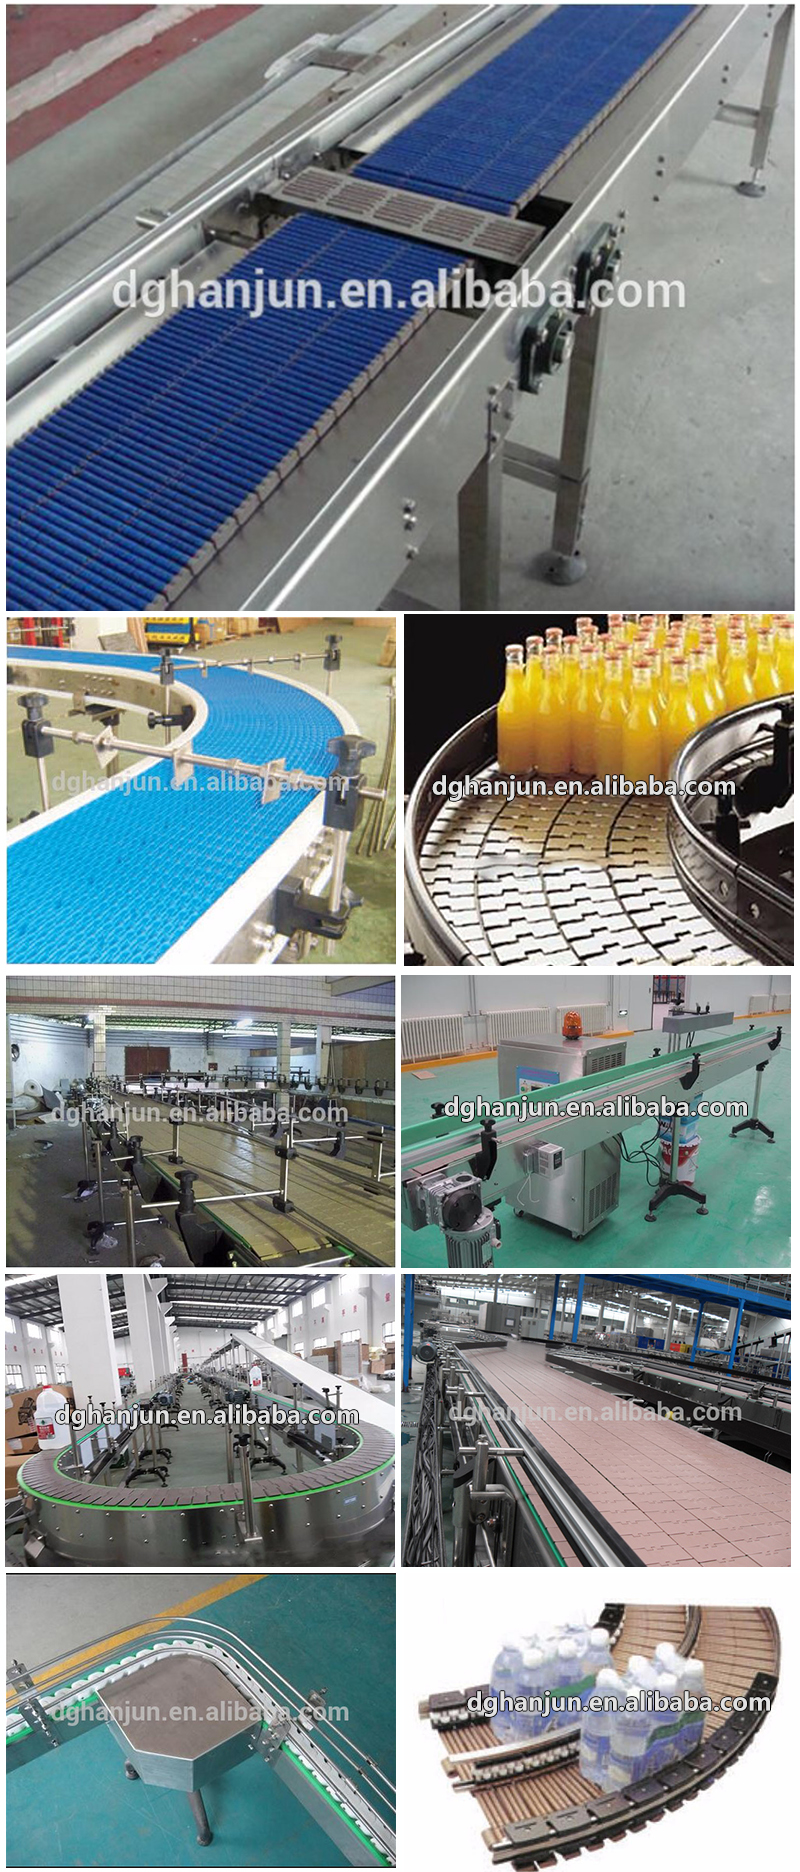 DHP modular plastic conveyor chain manufacturers manufacturer for food conveyor-5